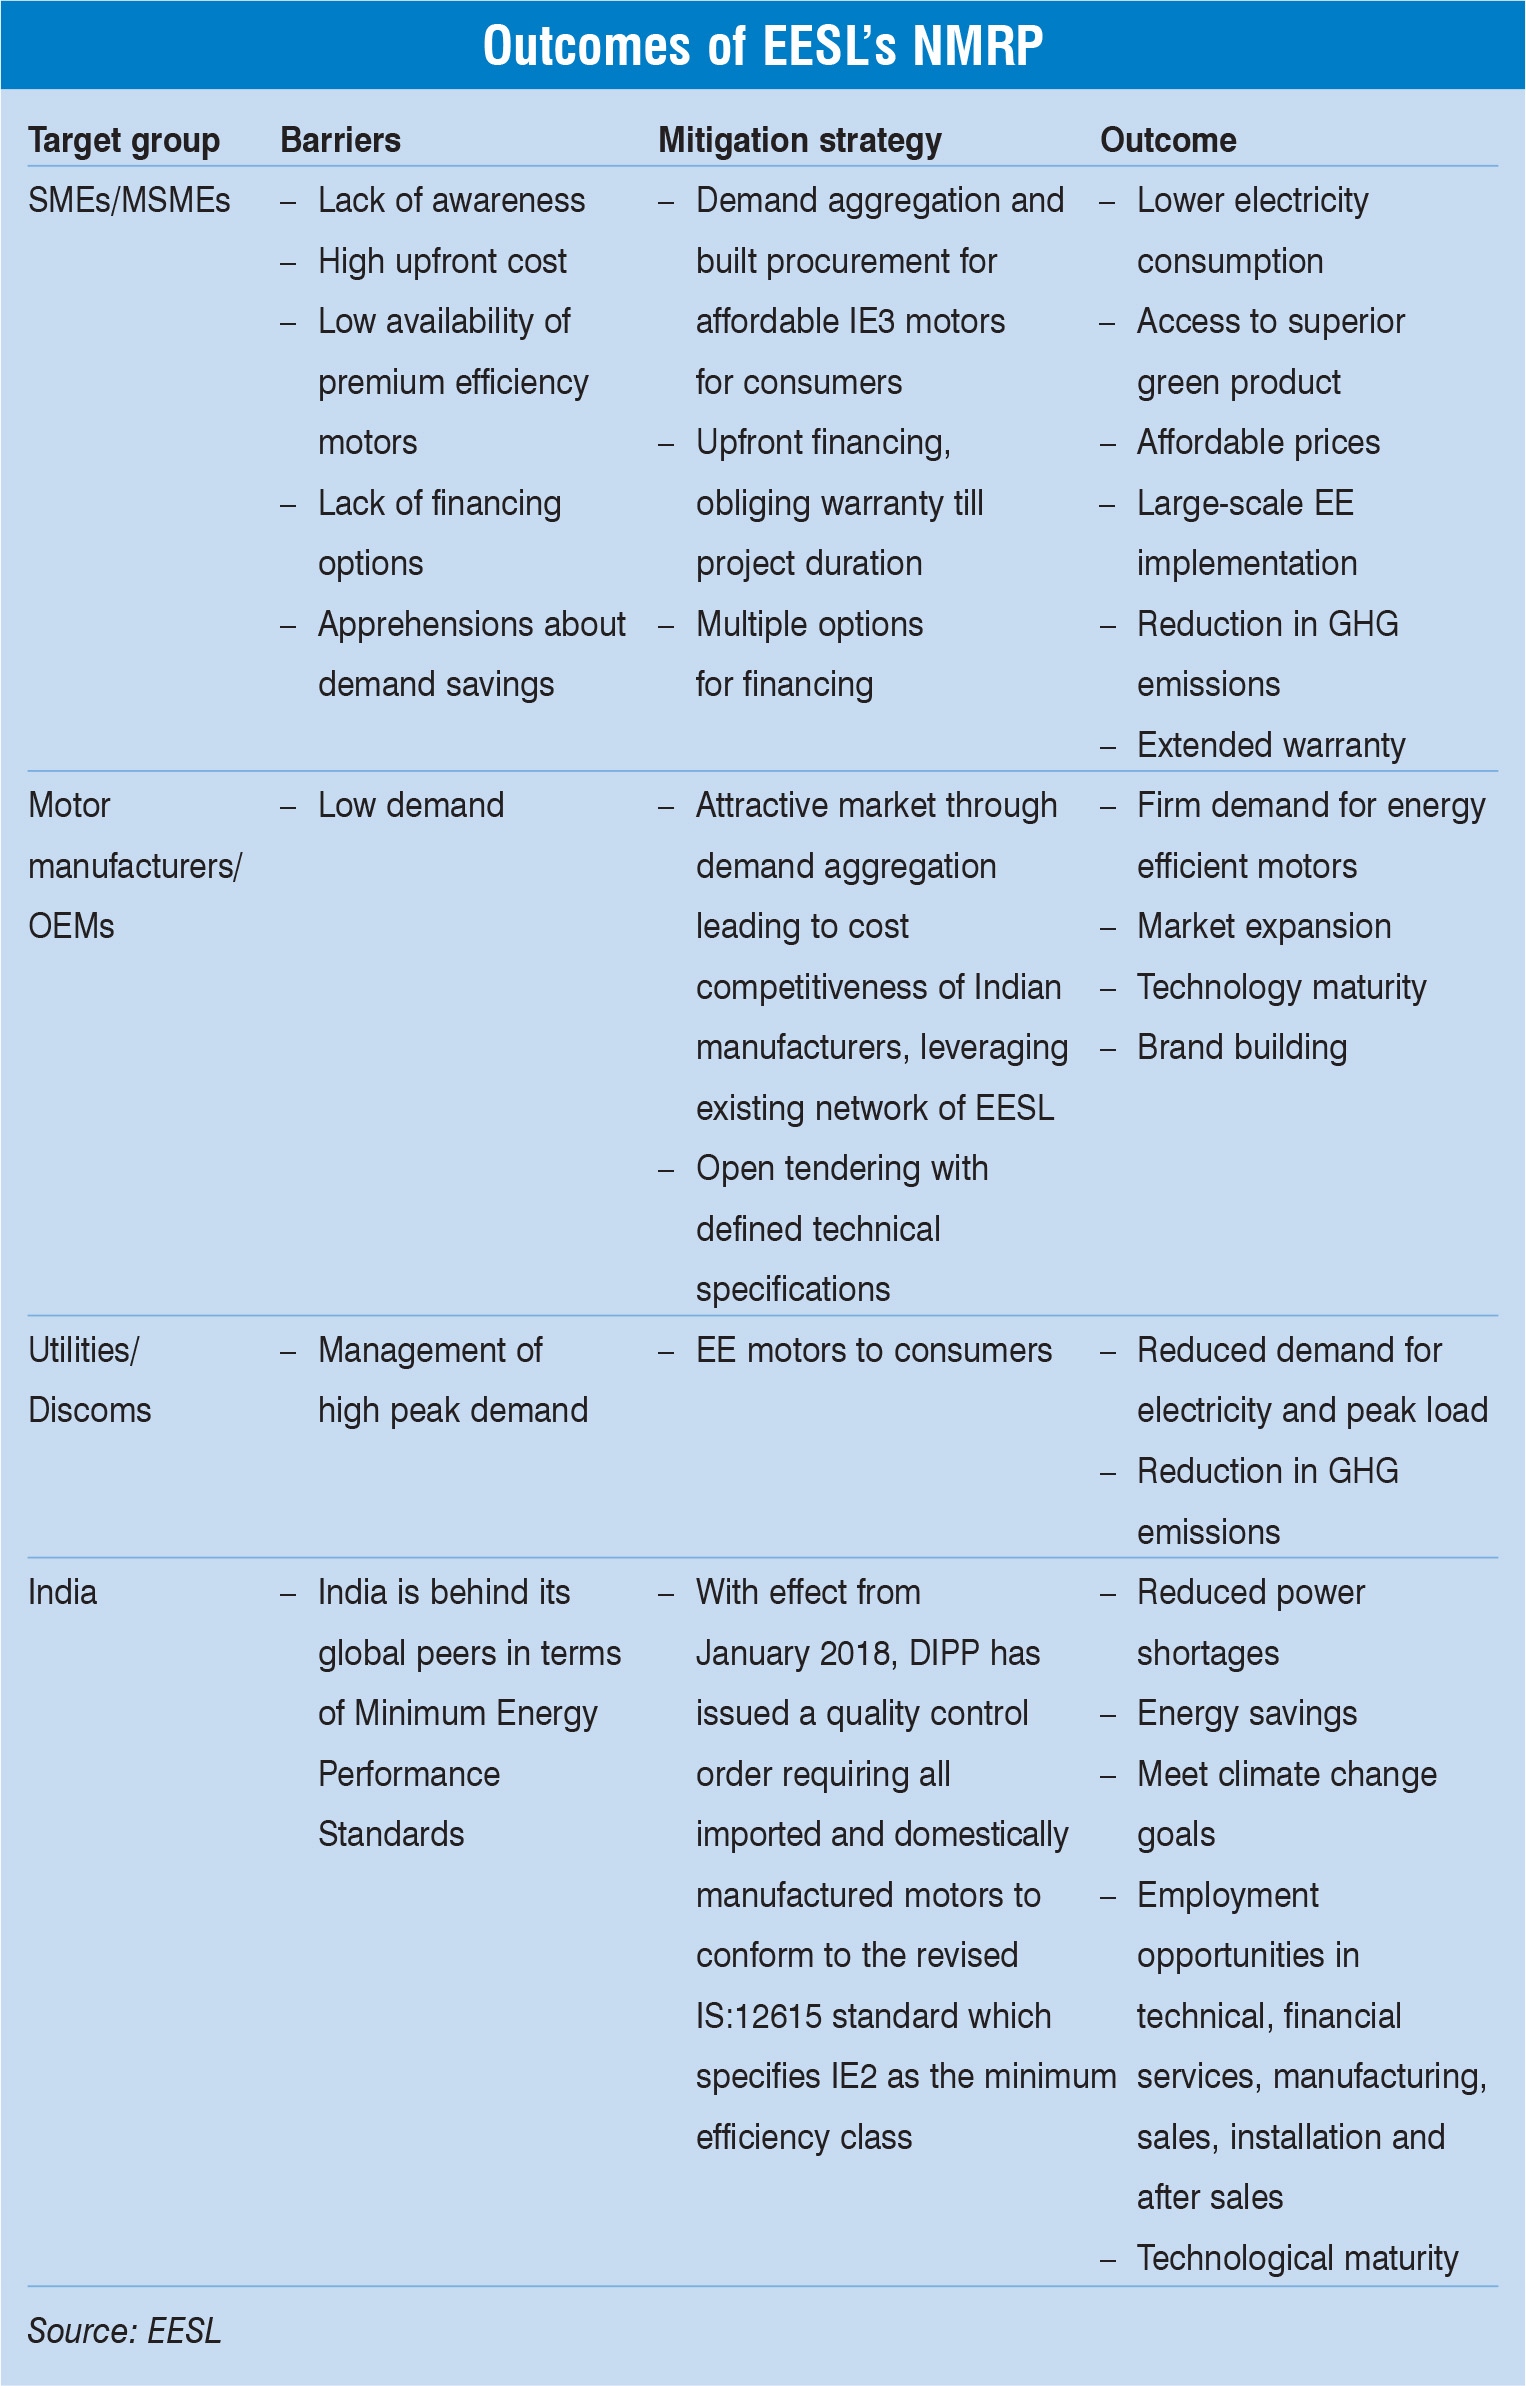 Outcomes of EESL's NMRP